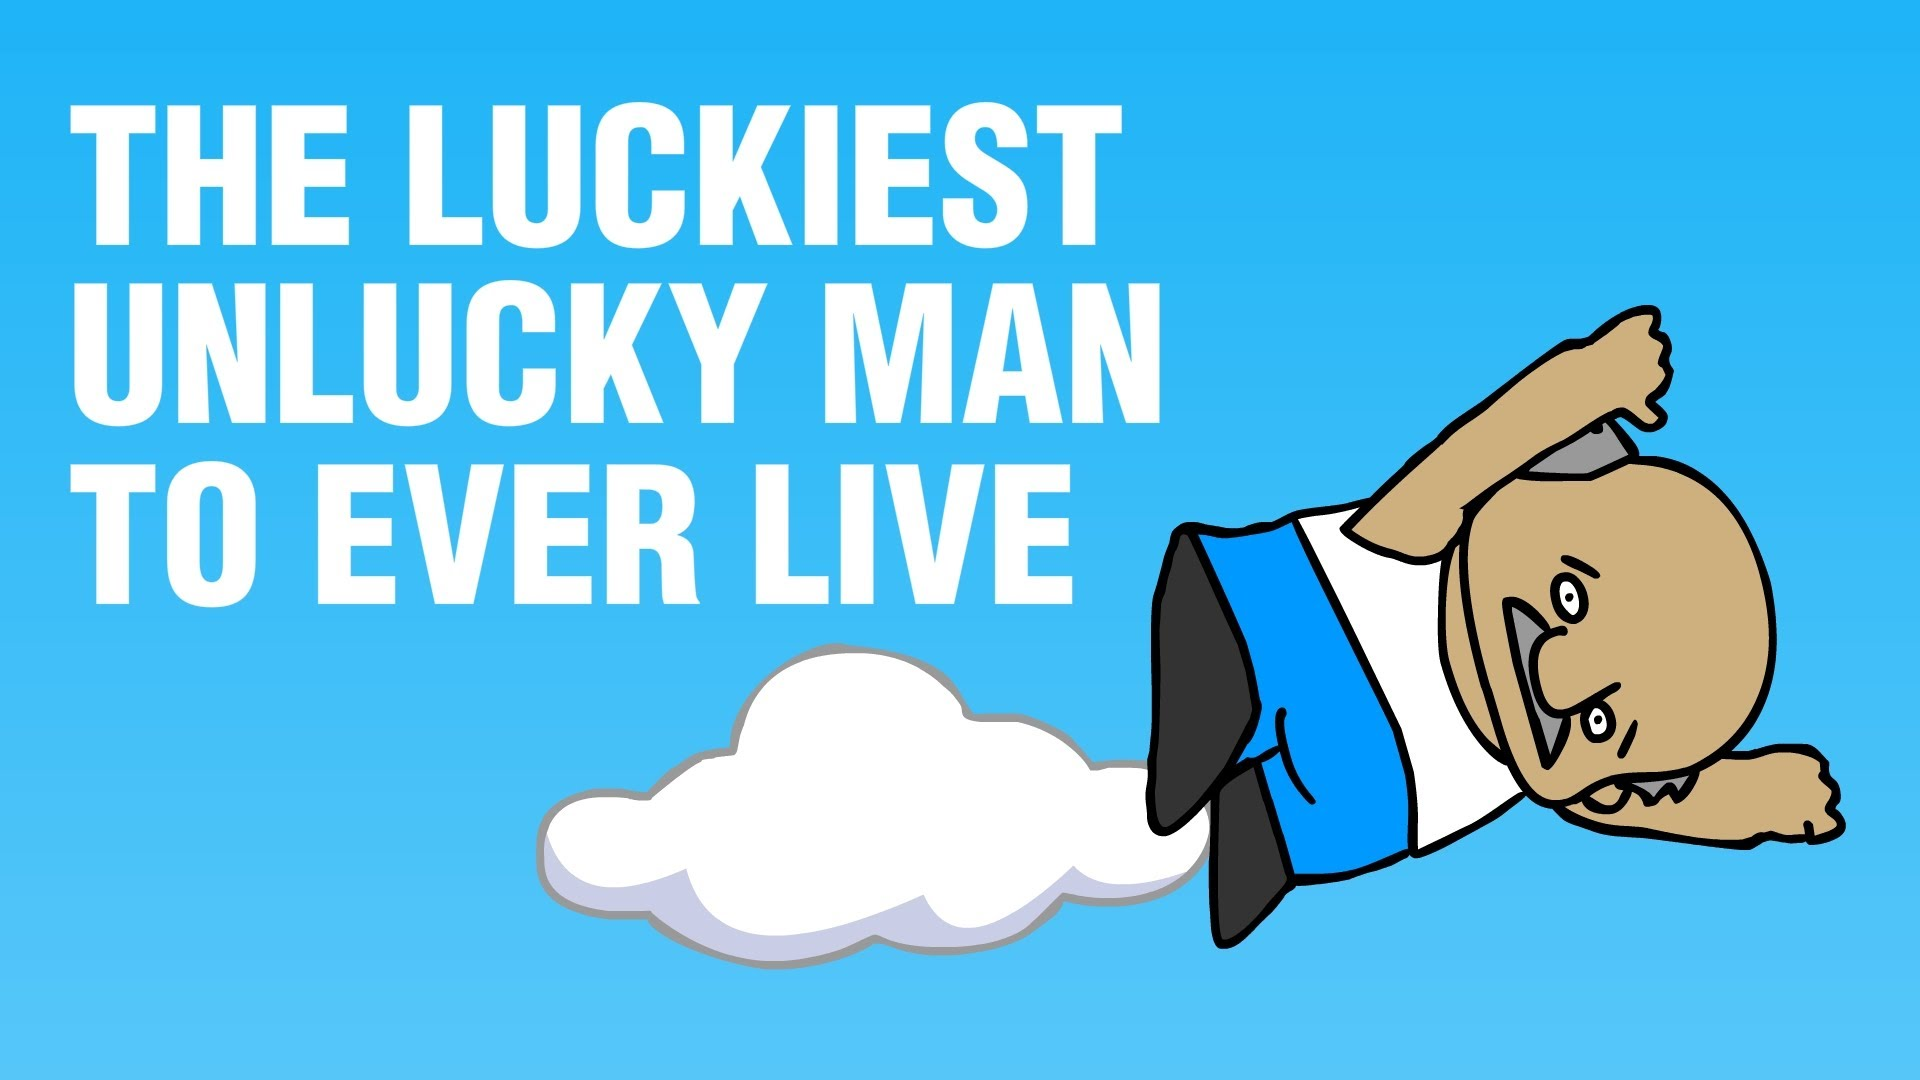 「世界上最幸運的倒楣鬼」- The Luckiest Unlucky Man To Ever Live